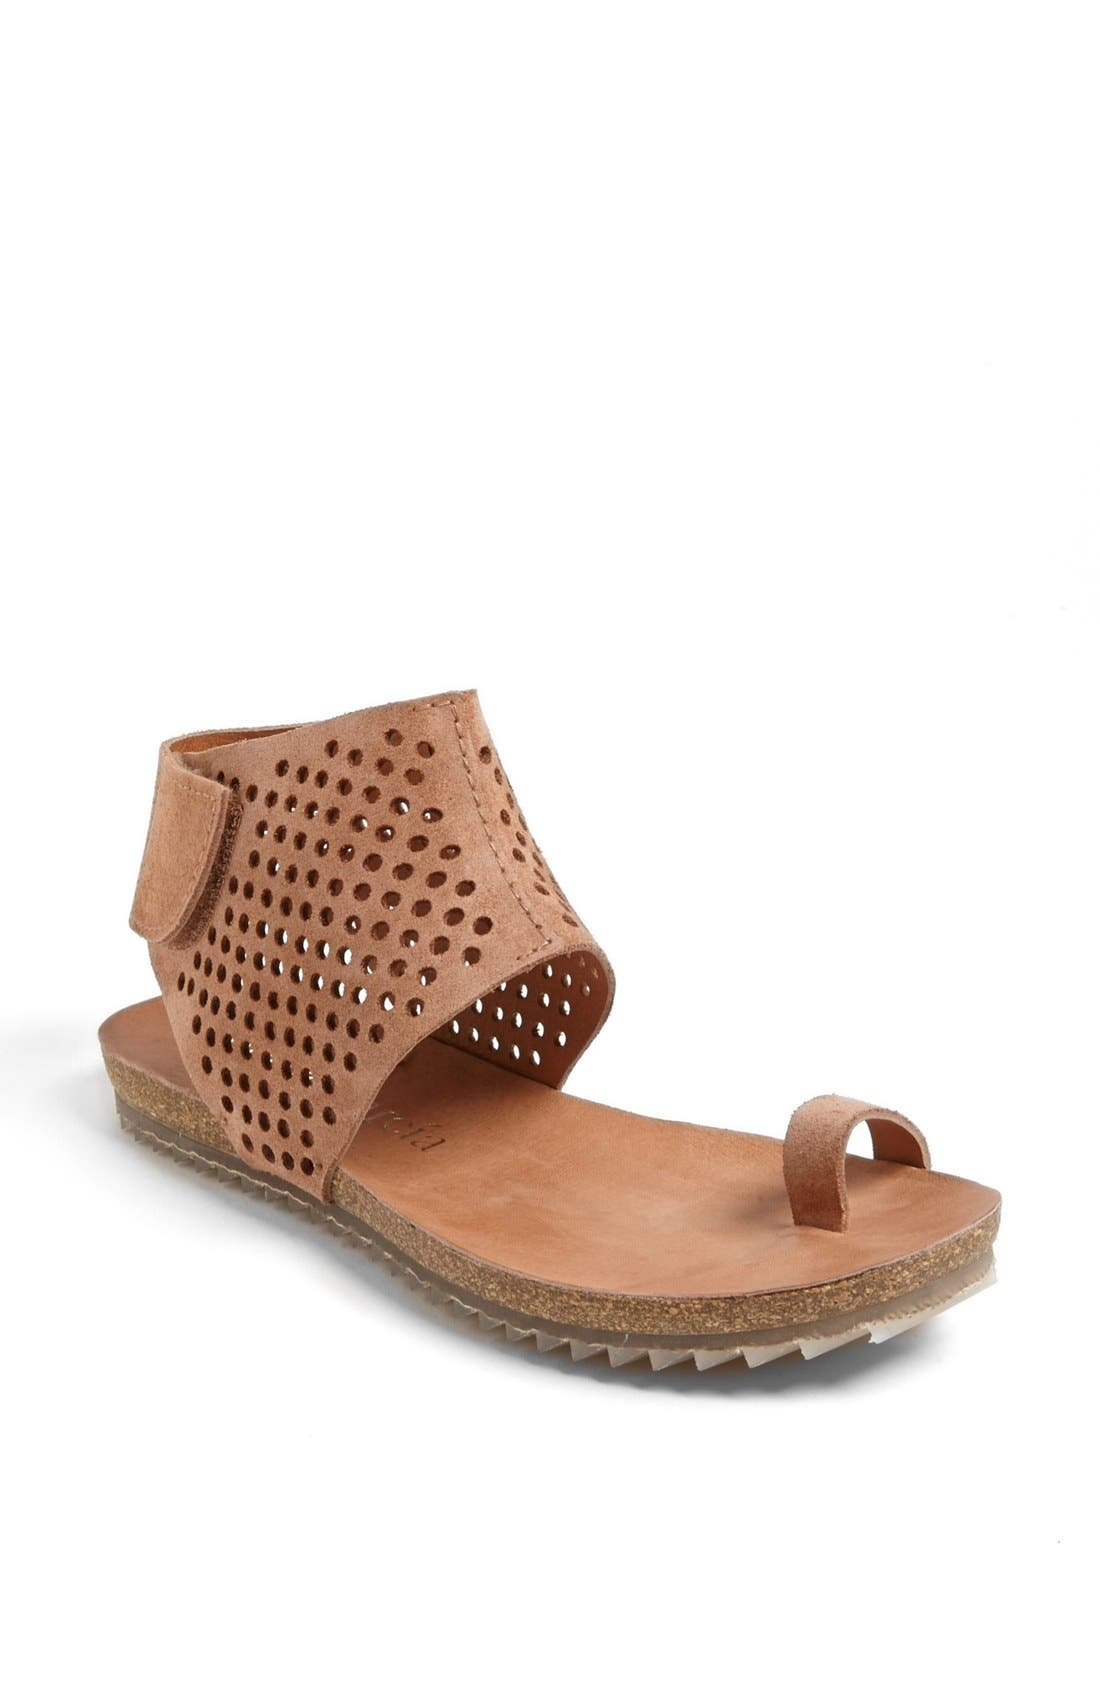 Main Image - Pedro Garcia Perforated Ankle Cuff Sandal (Women)